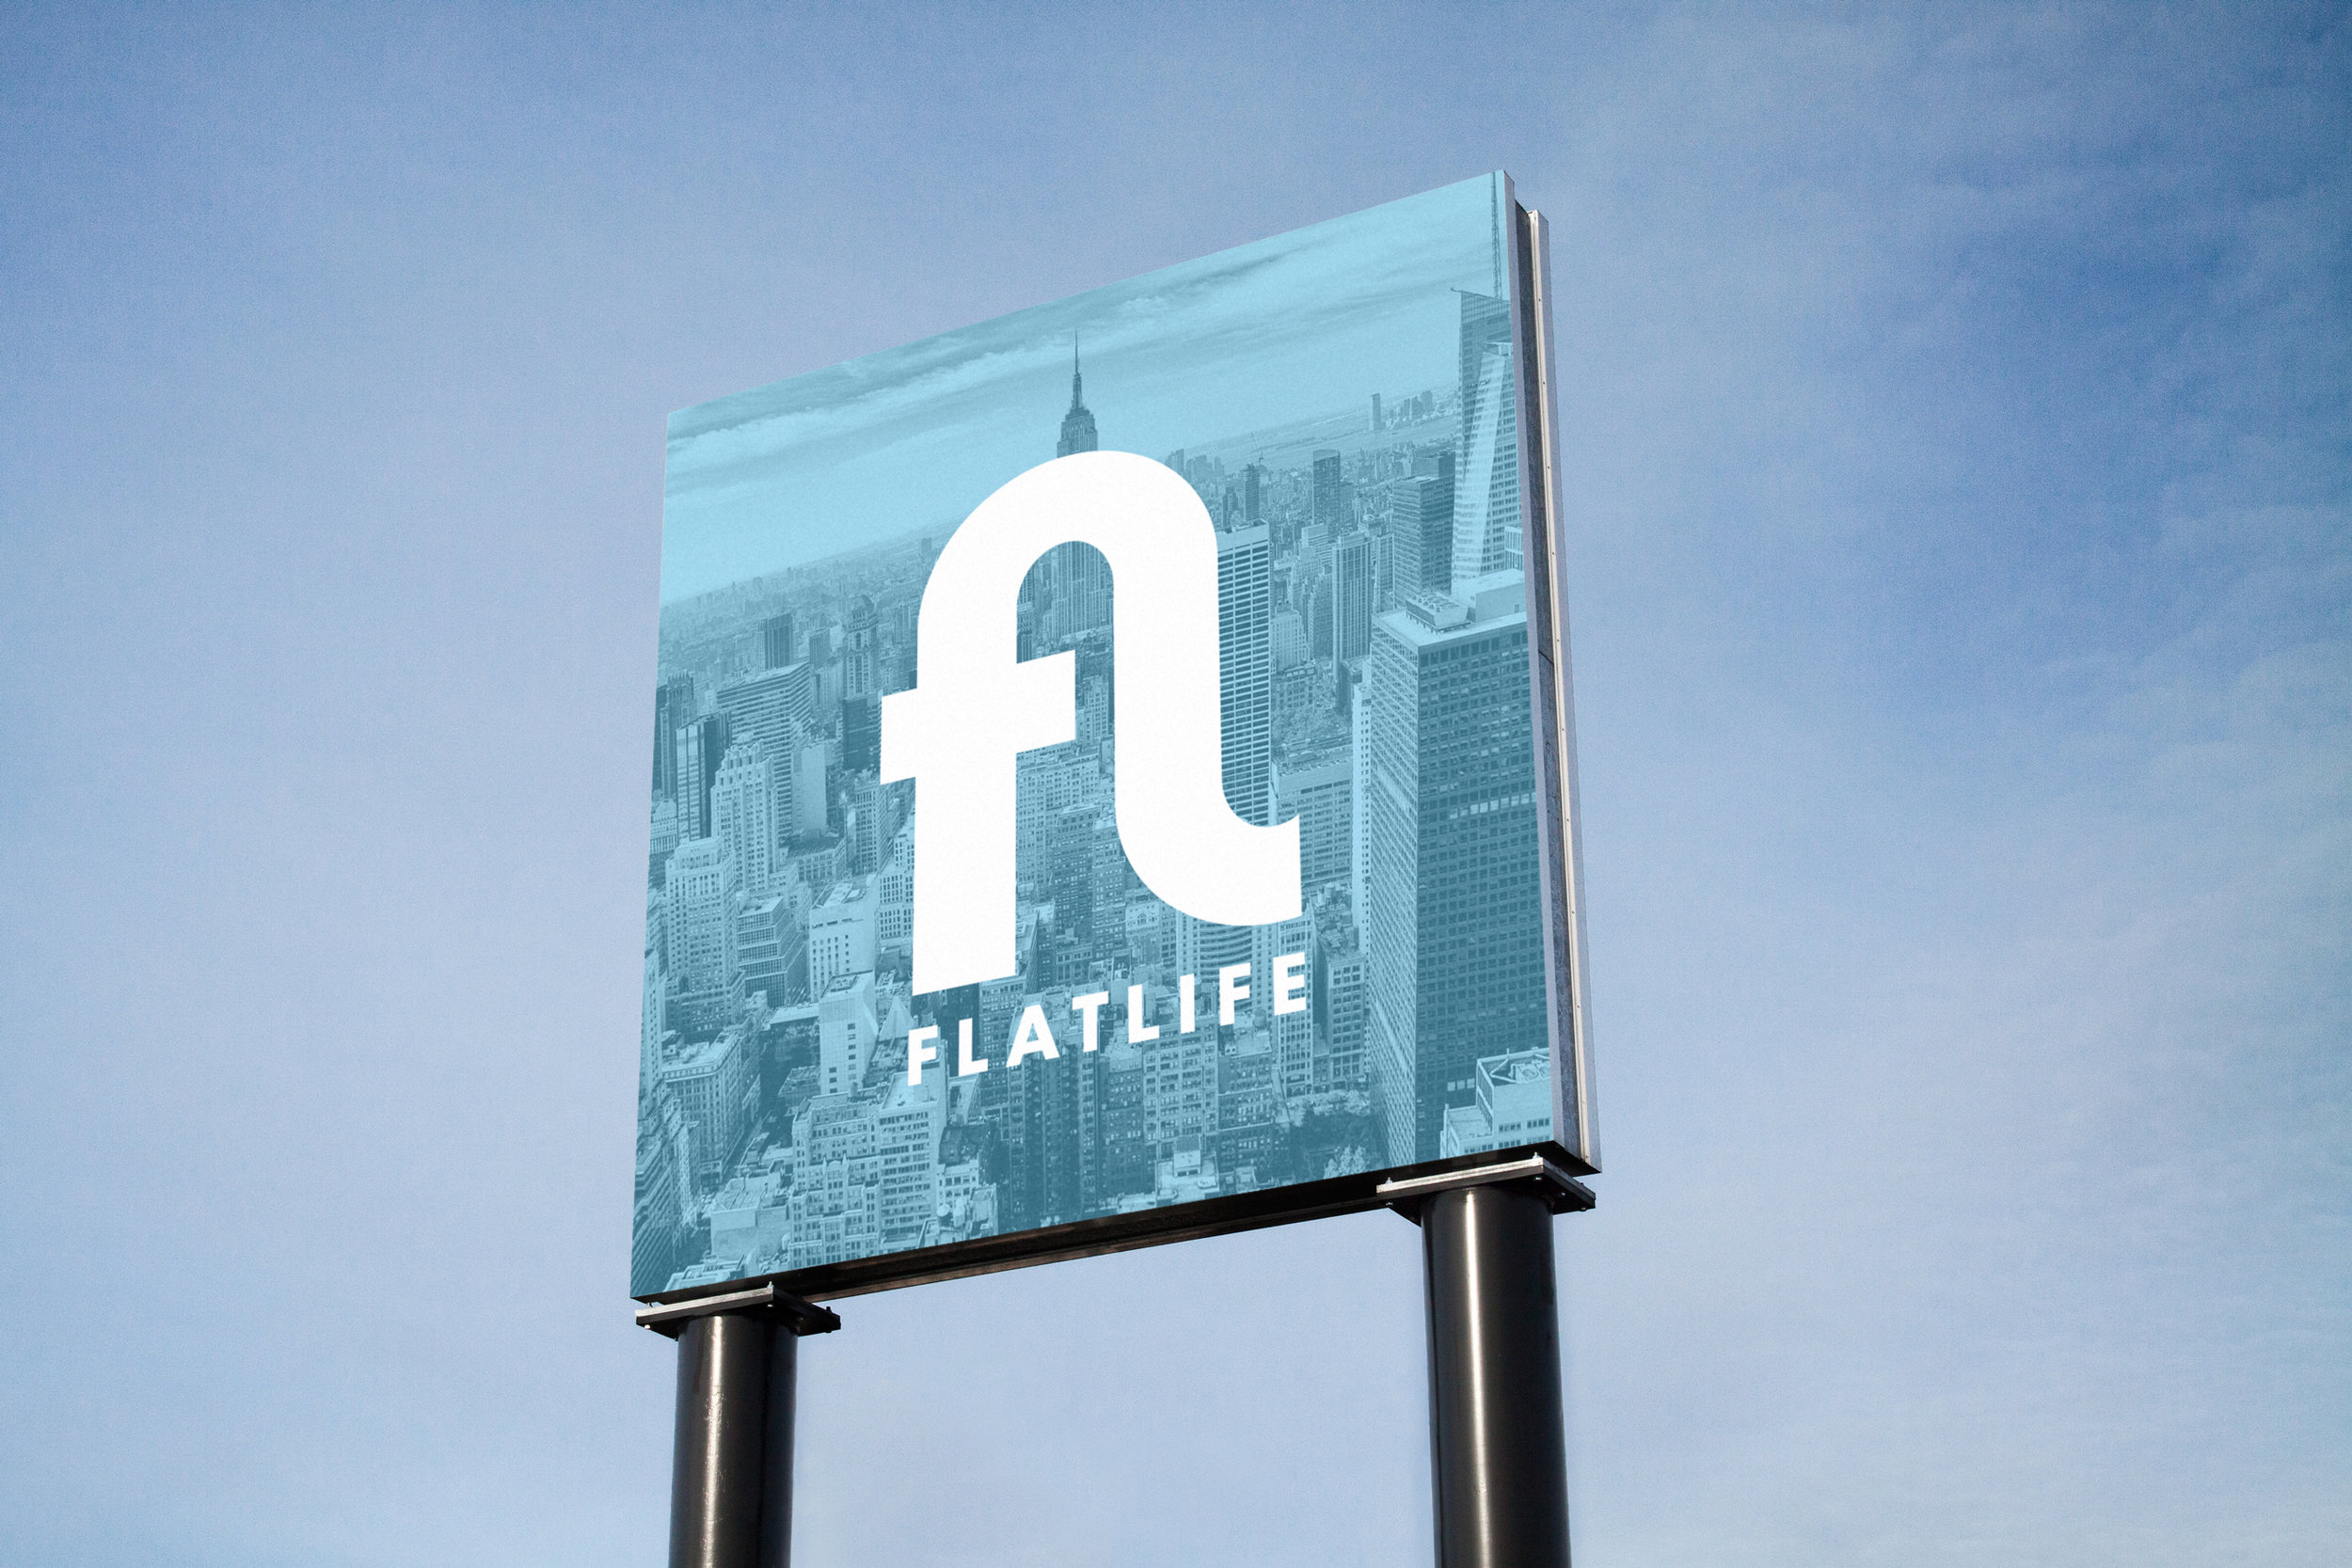 Outdoor-Advertising-PSD-MockUps-2_fl.jpg